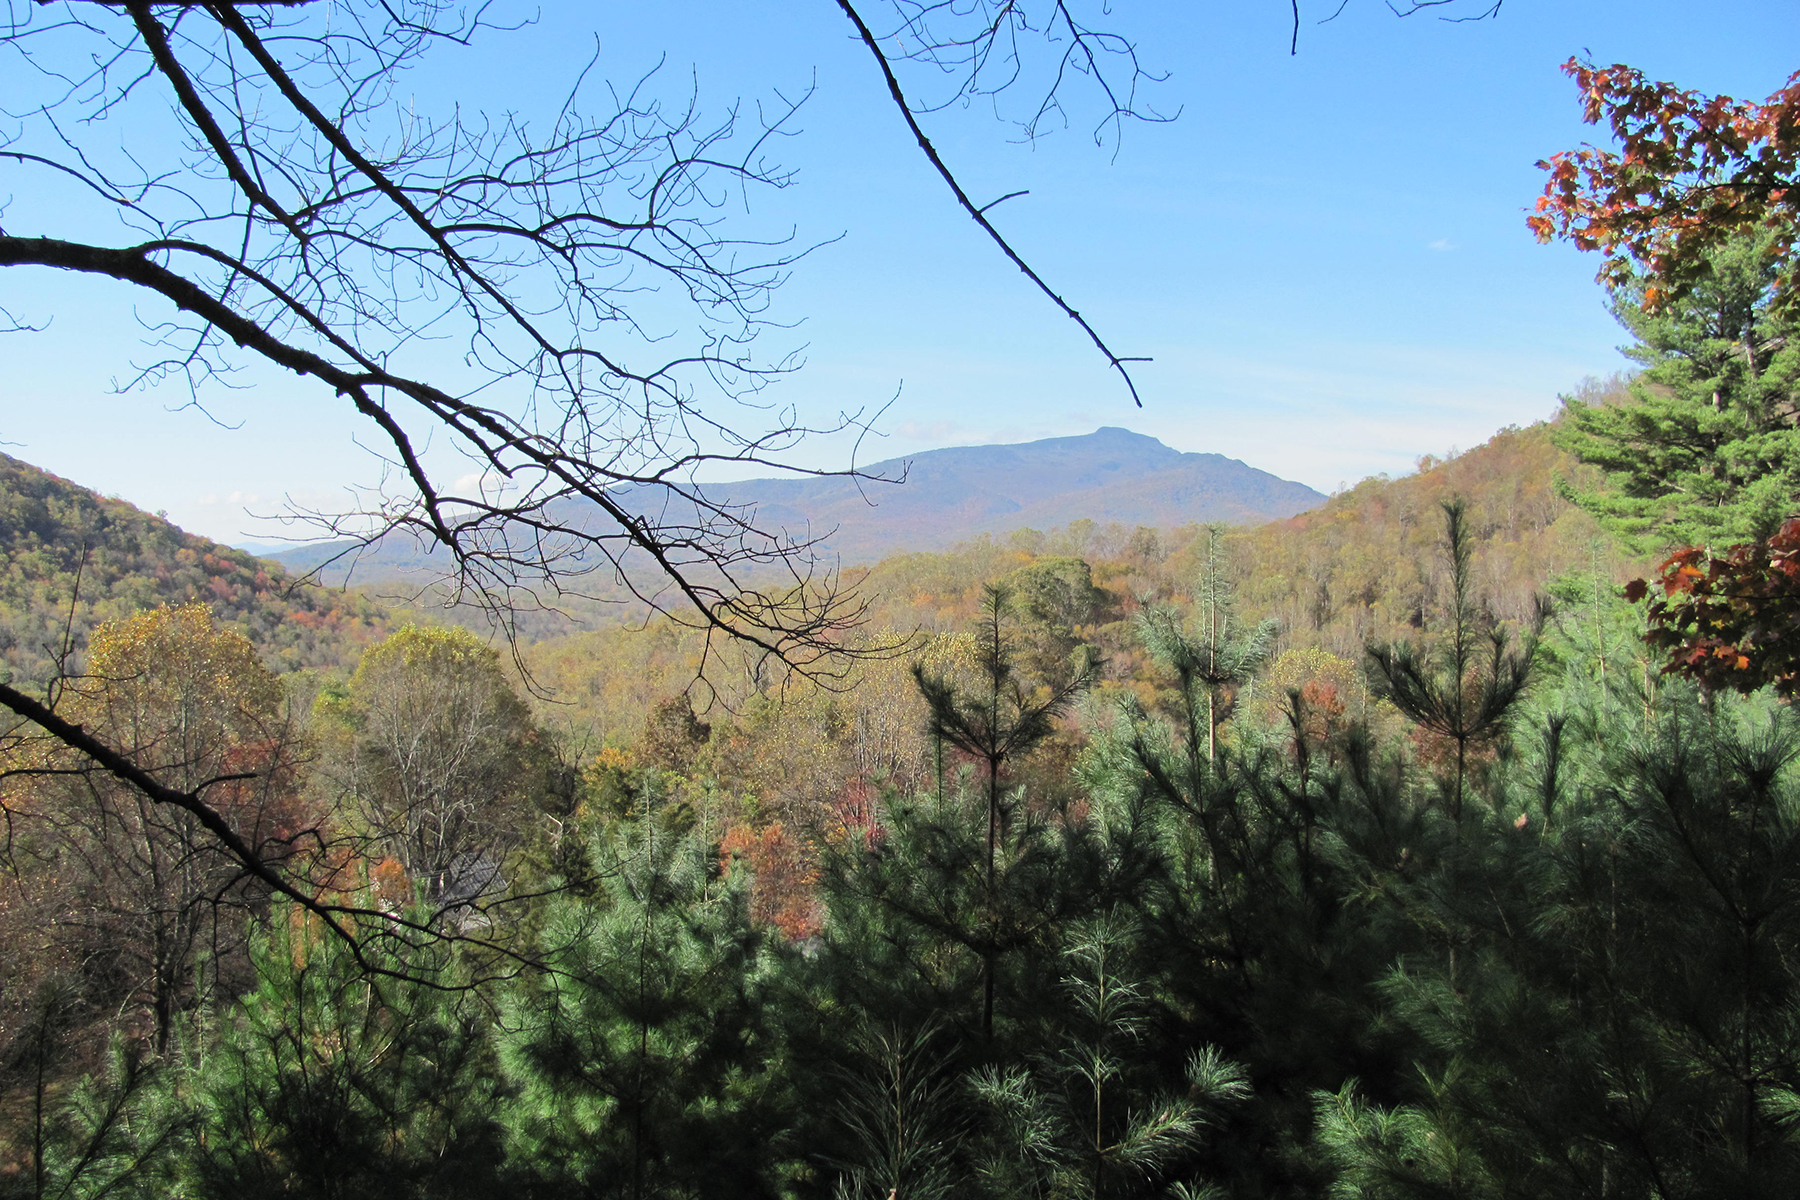 Single Family Home for Sale at 40 ACRE ESTATE - BLOWING ROCK 3914/ 3916 Shulls Mill Rd Blowing Rock, North Carolina 28605 United States